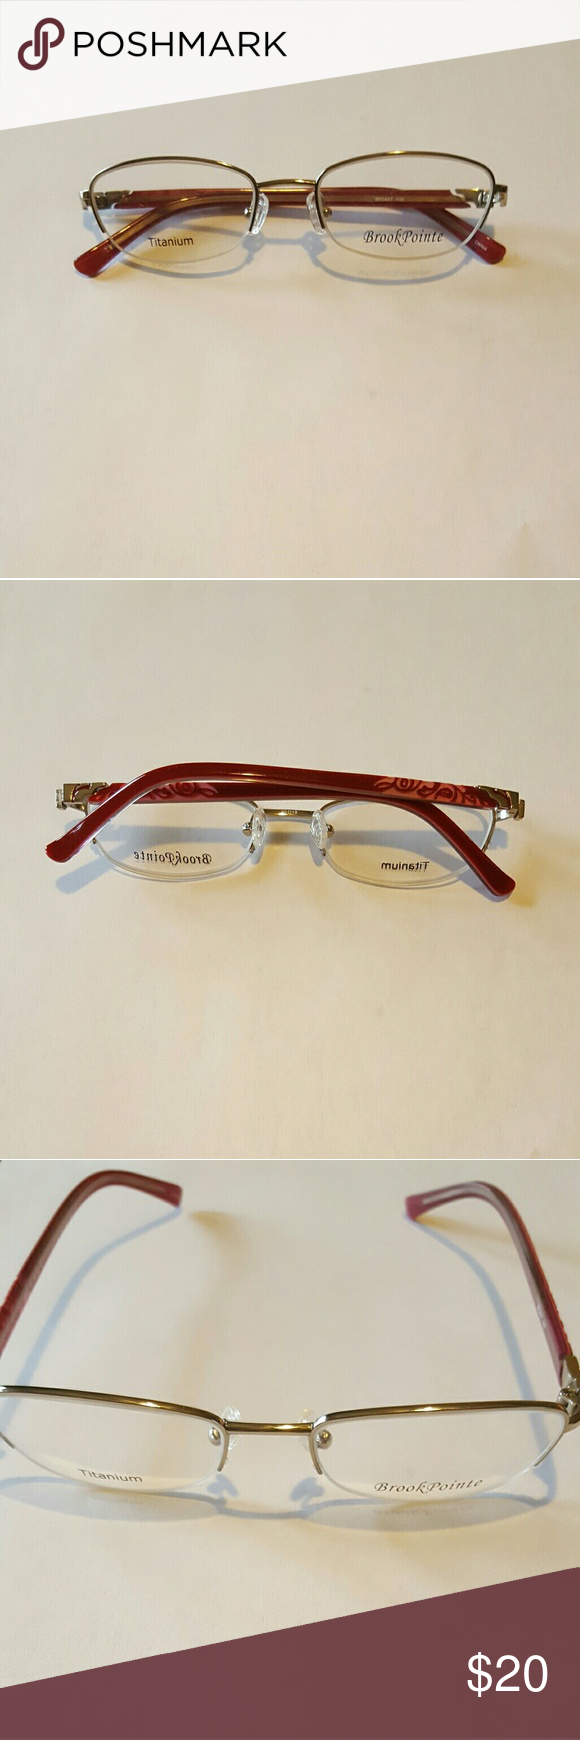 BrookPointe Glasses NWOT BrookPointe non prescription glasses.  Comes with demo lens Accessories Glasses